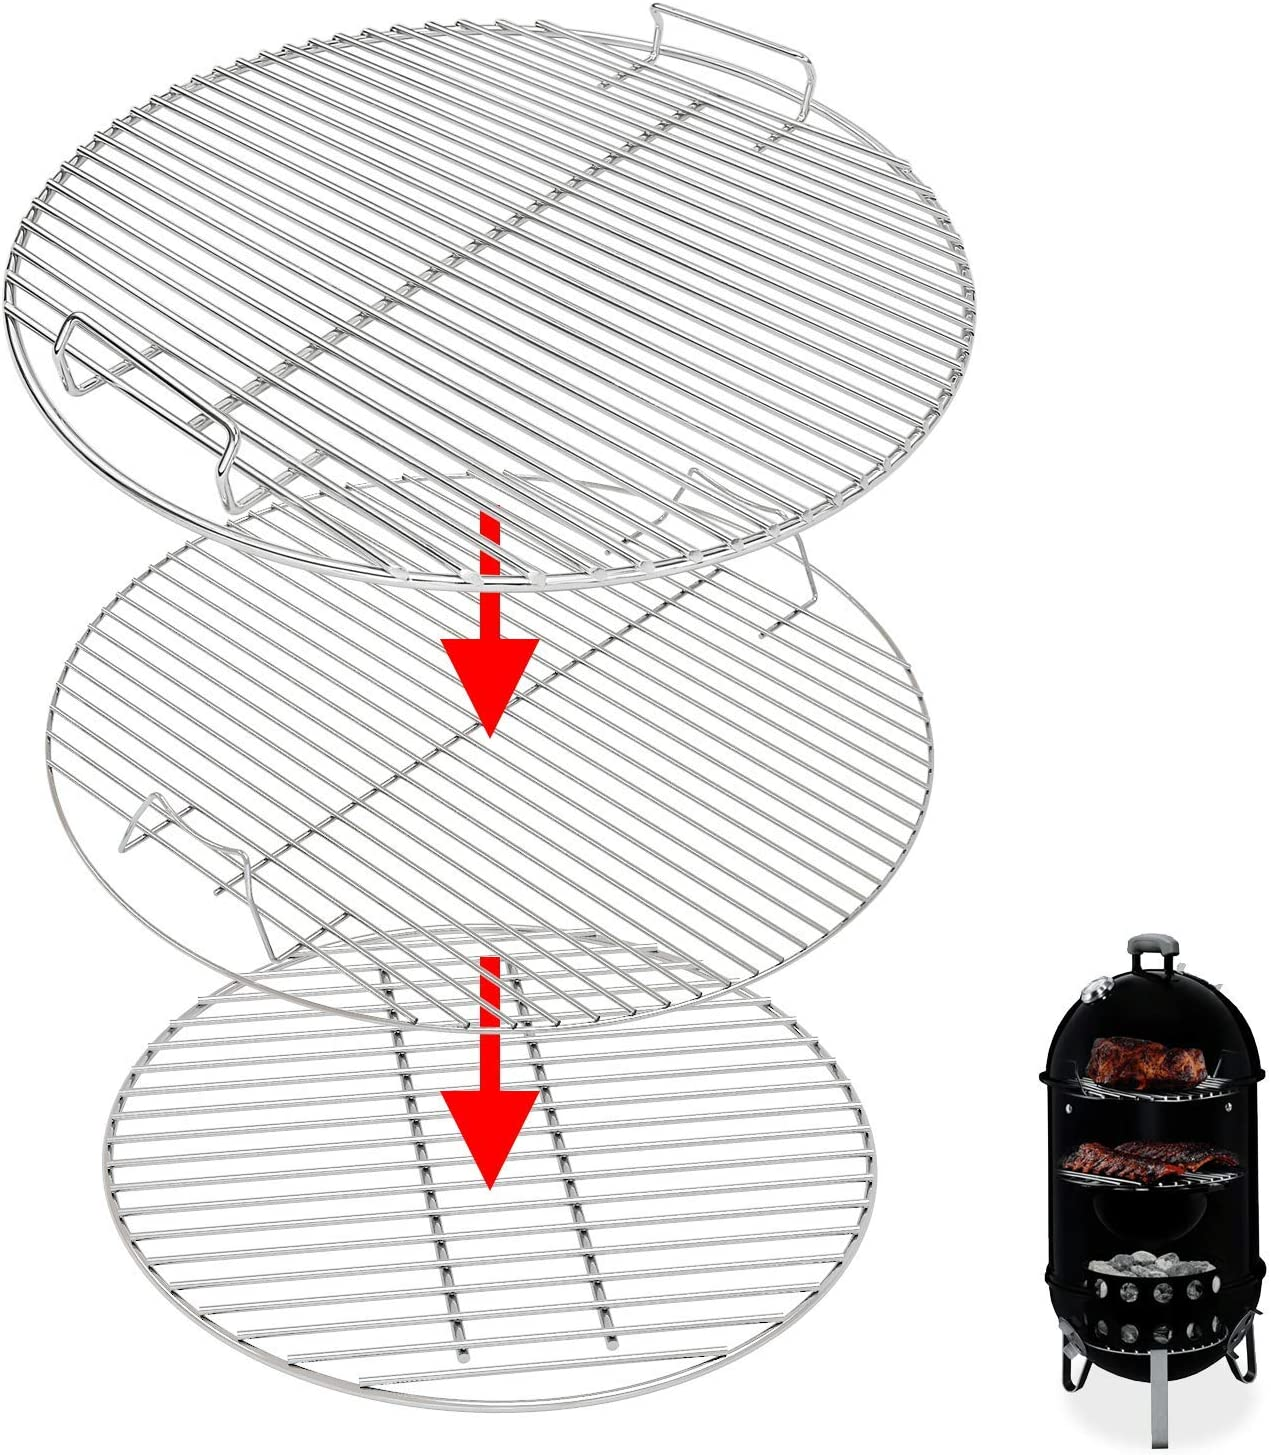 Uniflasy 7432 Upper Cooking Grate 85042 Lower Grate 63013 Charcoal Grates for Weber Charcoal Grill 18/18.5 Inch Smokey Mountain Cooker, 2 Cooking Grate and 1 Charcoal Grate 3 Pack